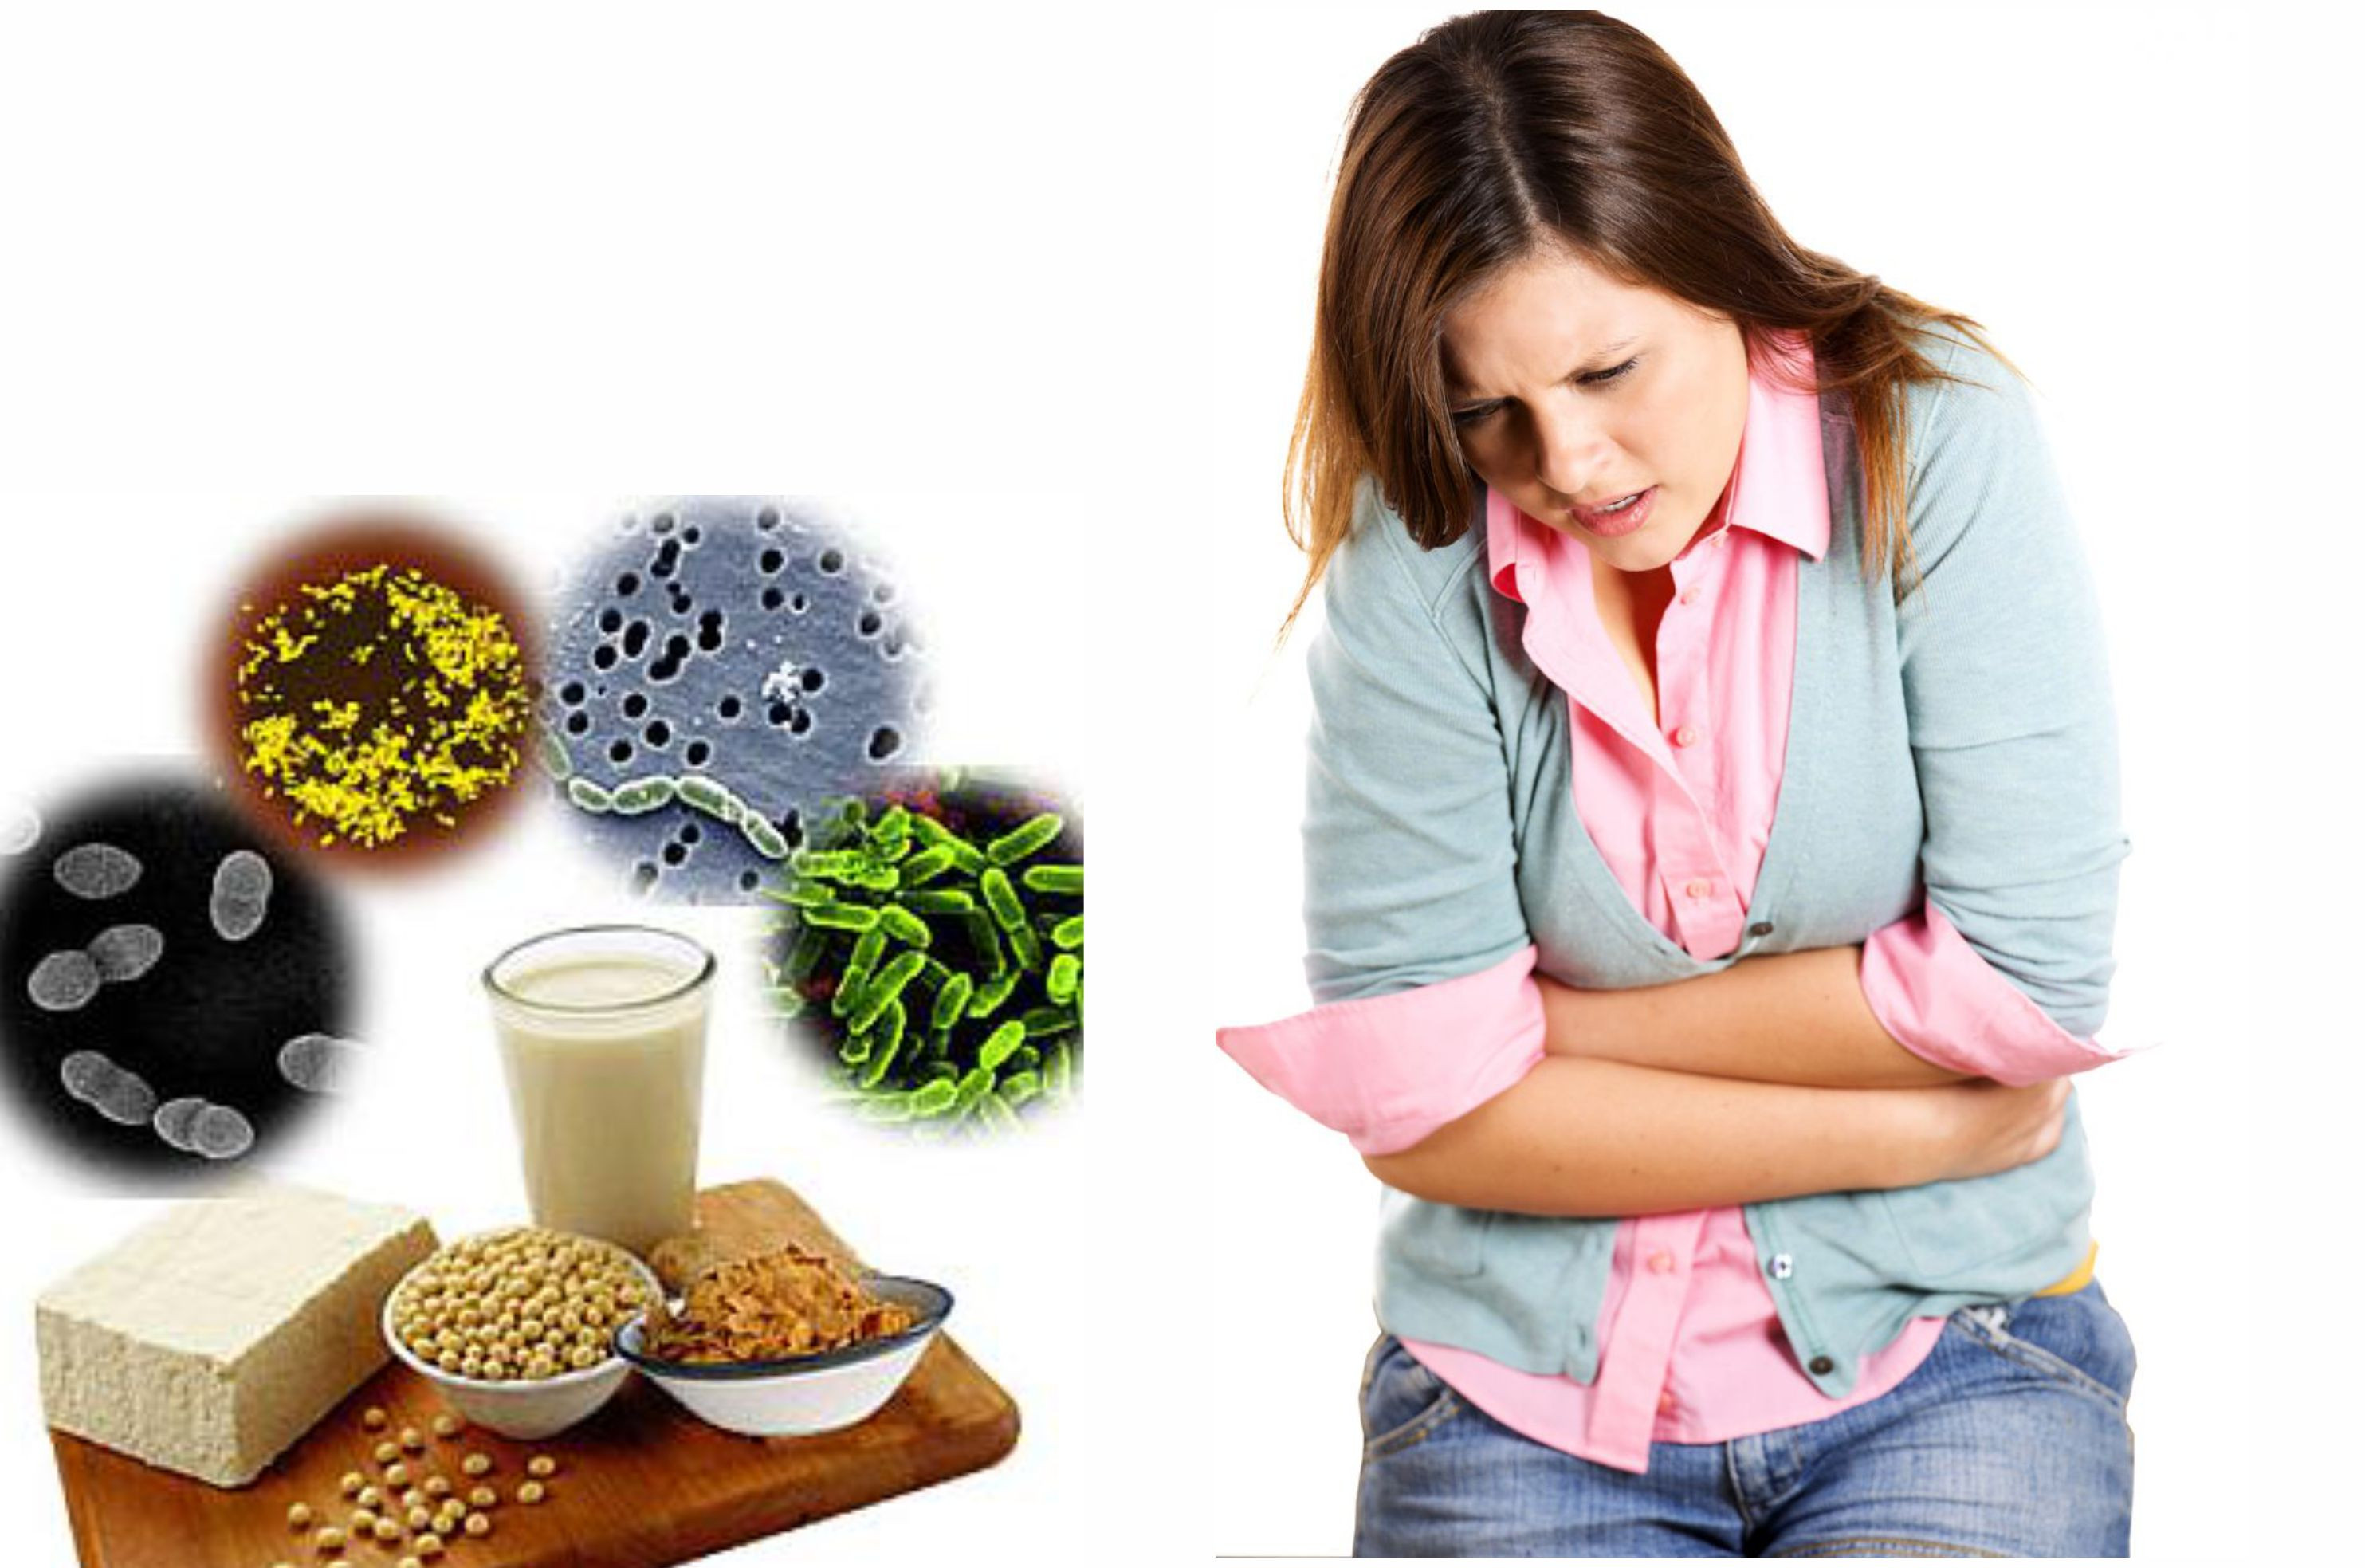 food contamination Learn about foodborne germs and illnesses and how to keep food safe to prevent food poisoning foodborne illness, or food poisoning, can be caused by many different germs learn about the different kinds of foodborne illness, what causes it, and some common symptoms.